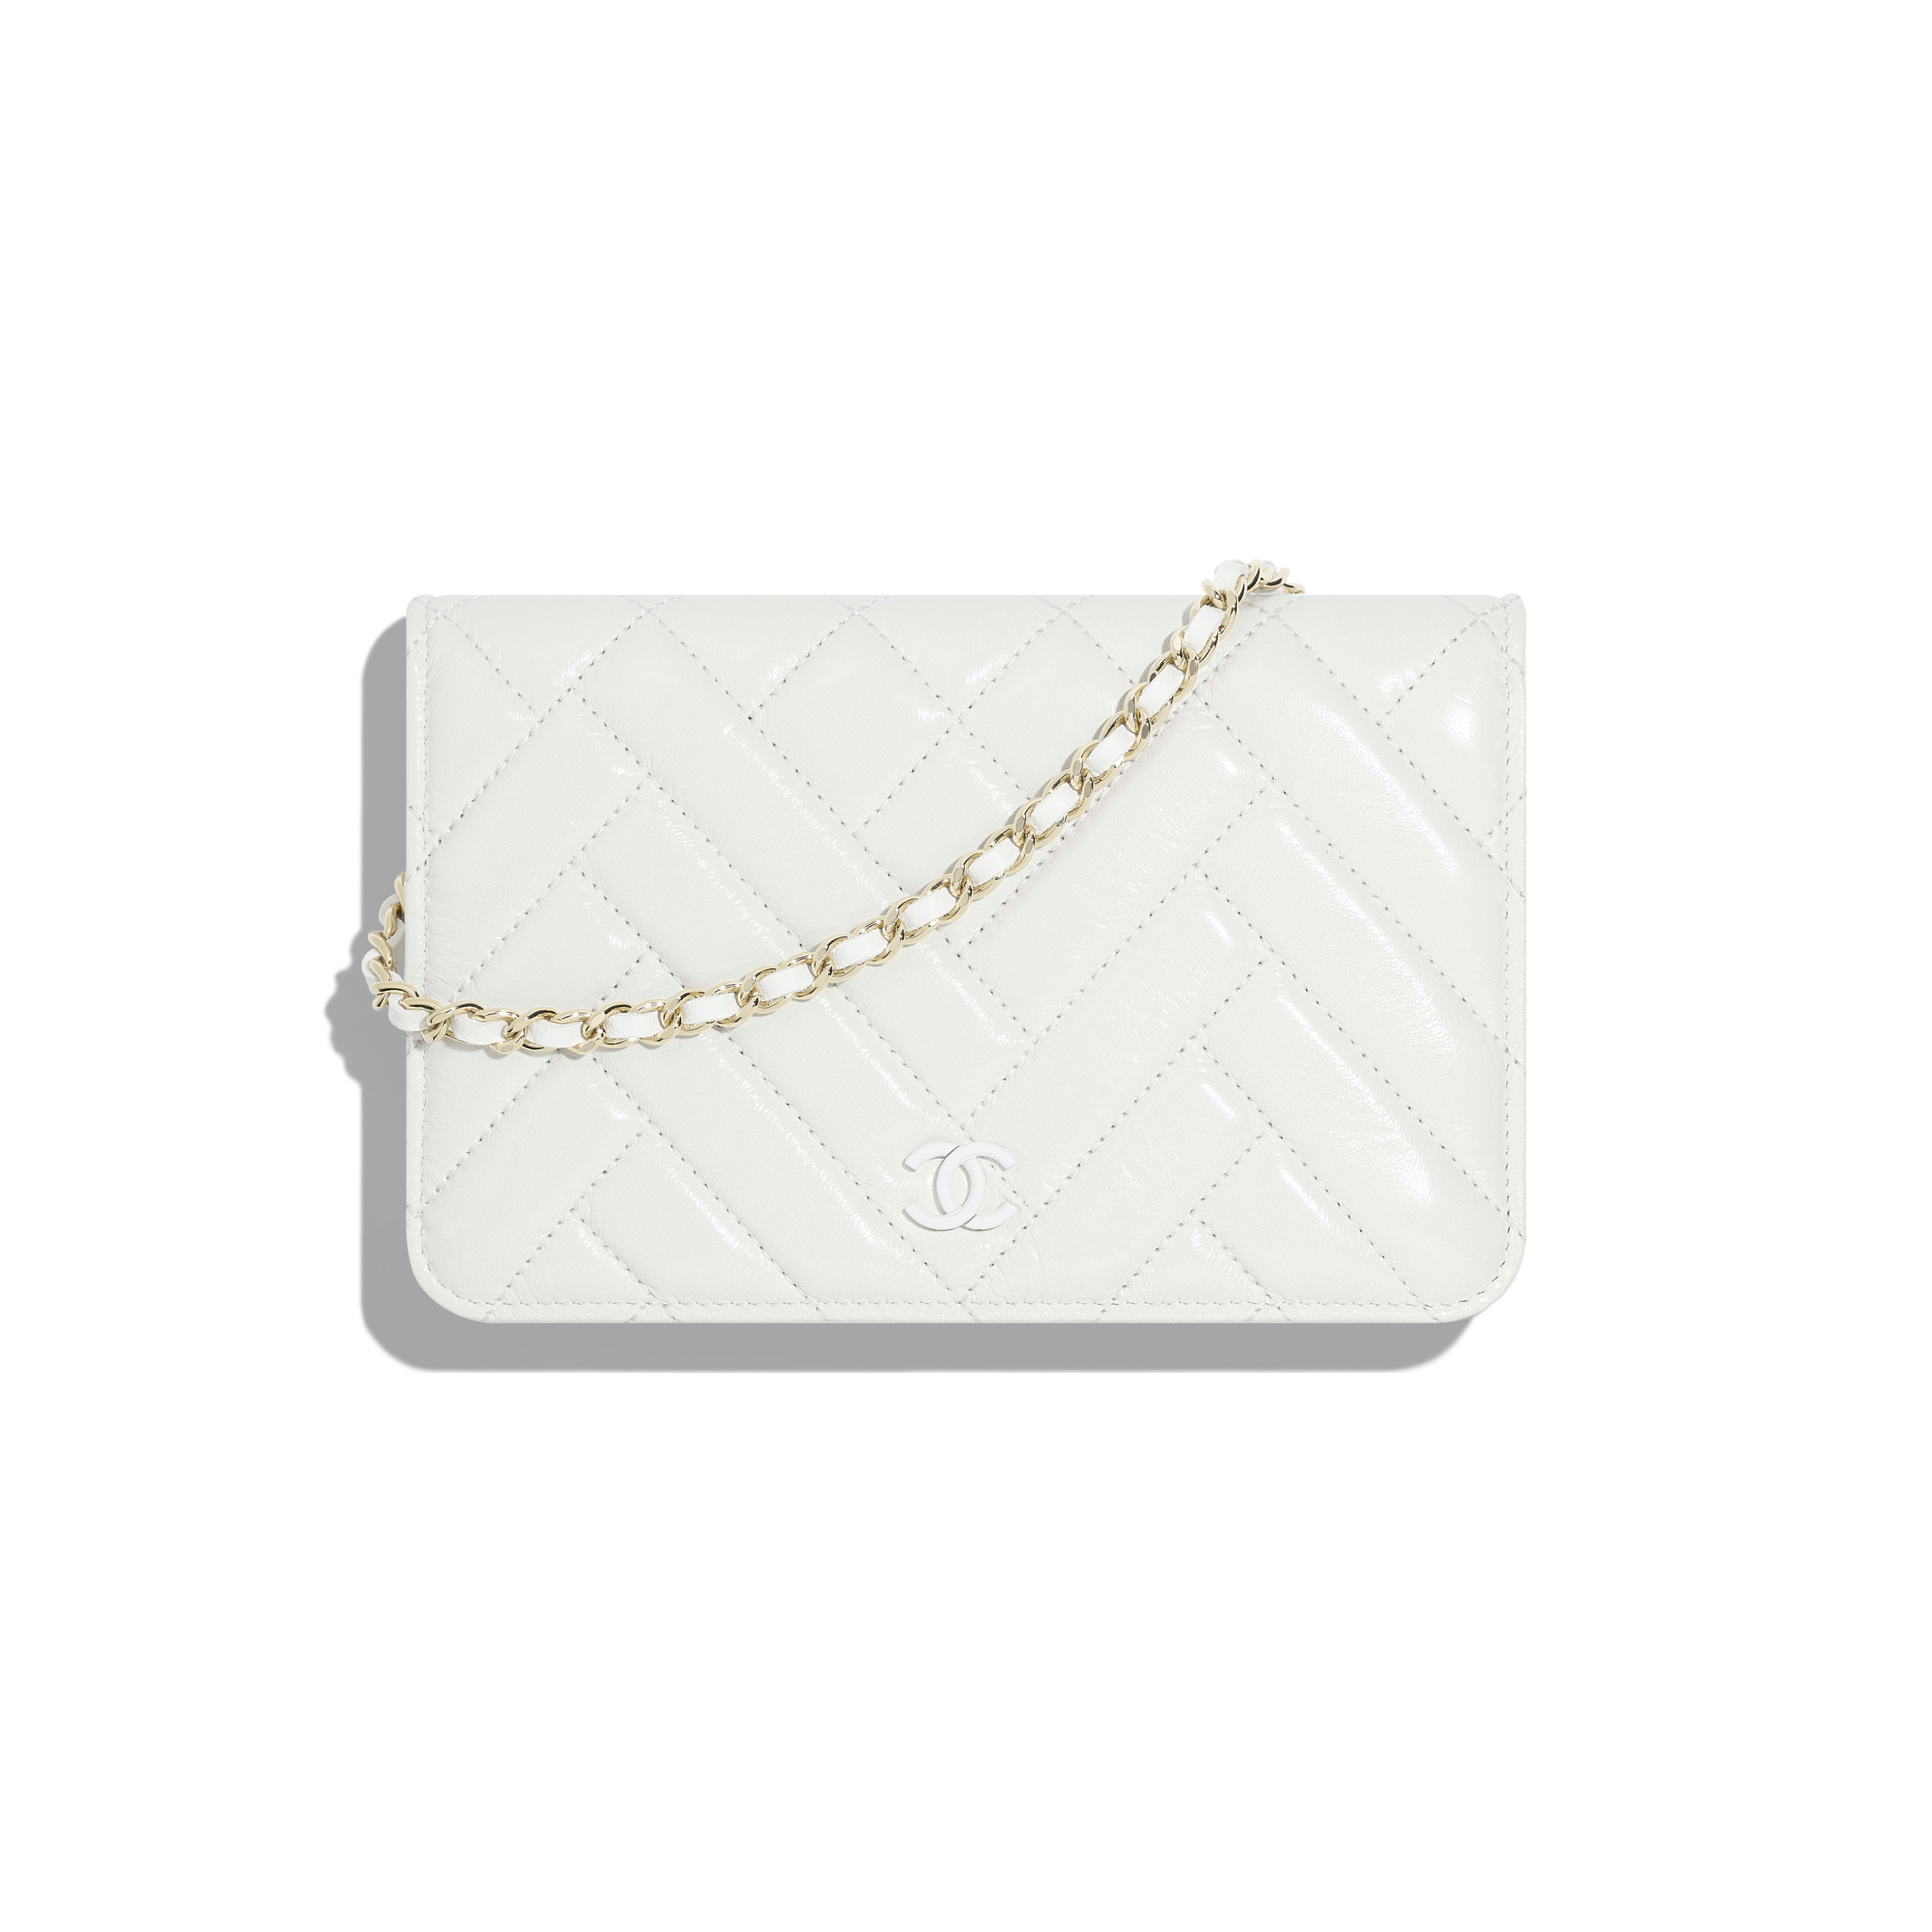 Wallet on Chain - White - Shiny Lambskin & Gold-Tone Metal - Default view - see full sized version